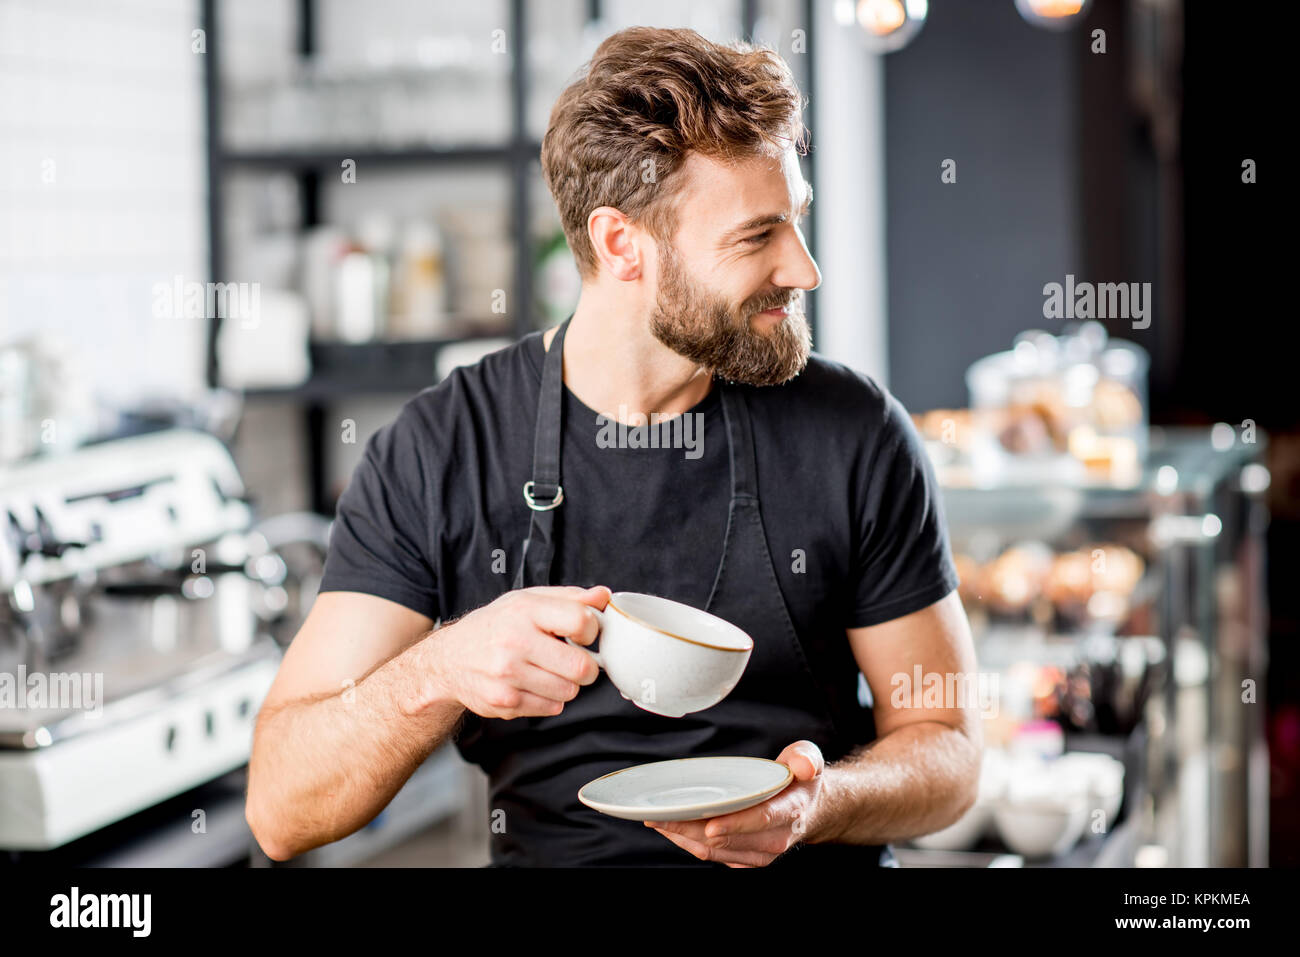 Barista portrait in the cafe - Stock Image